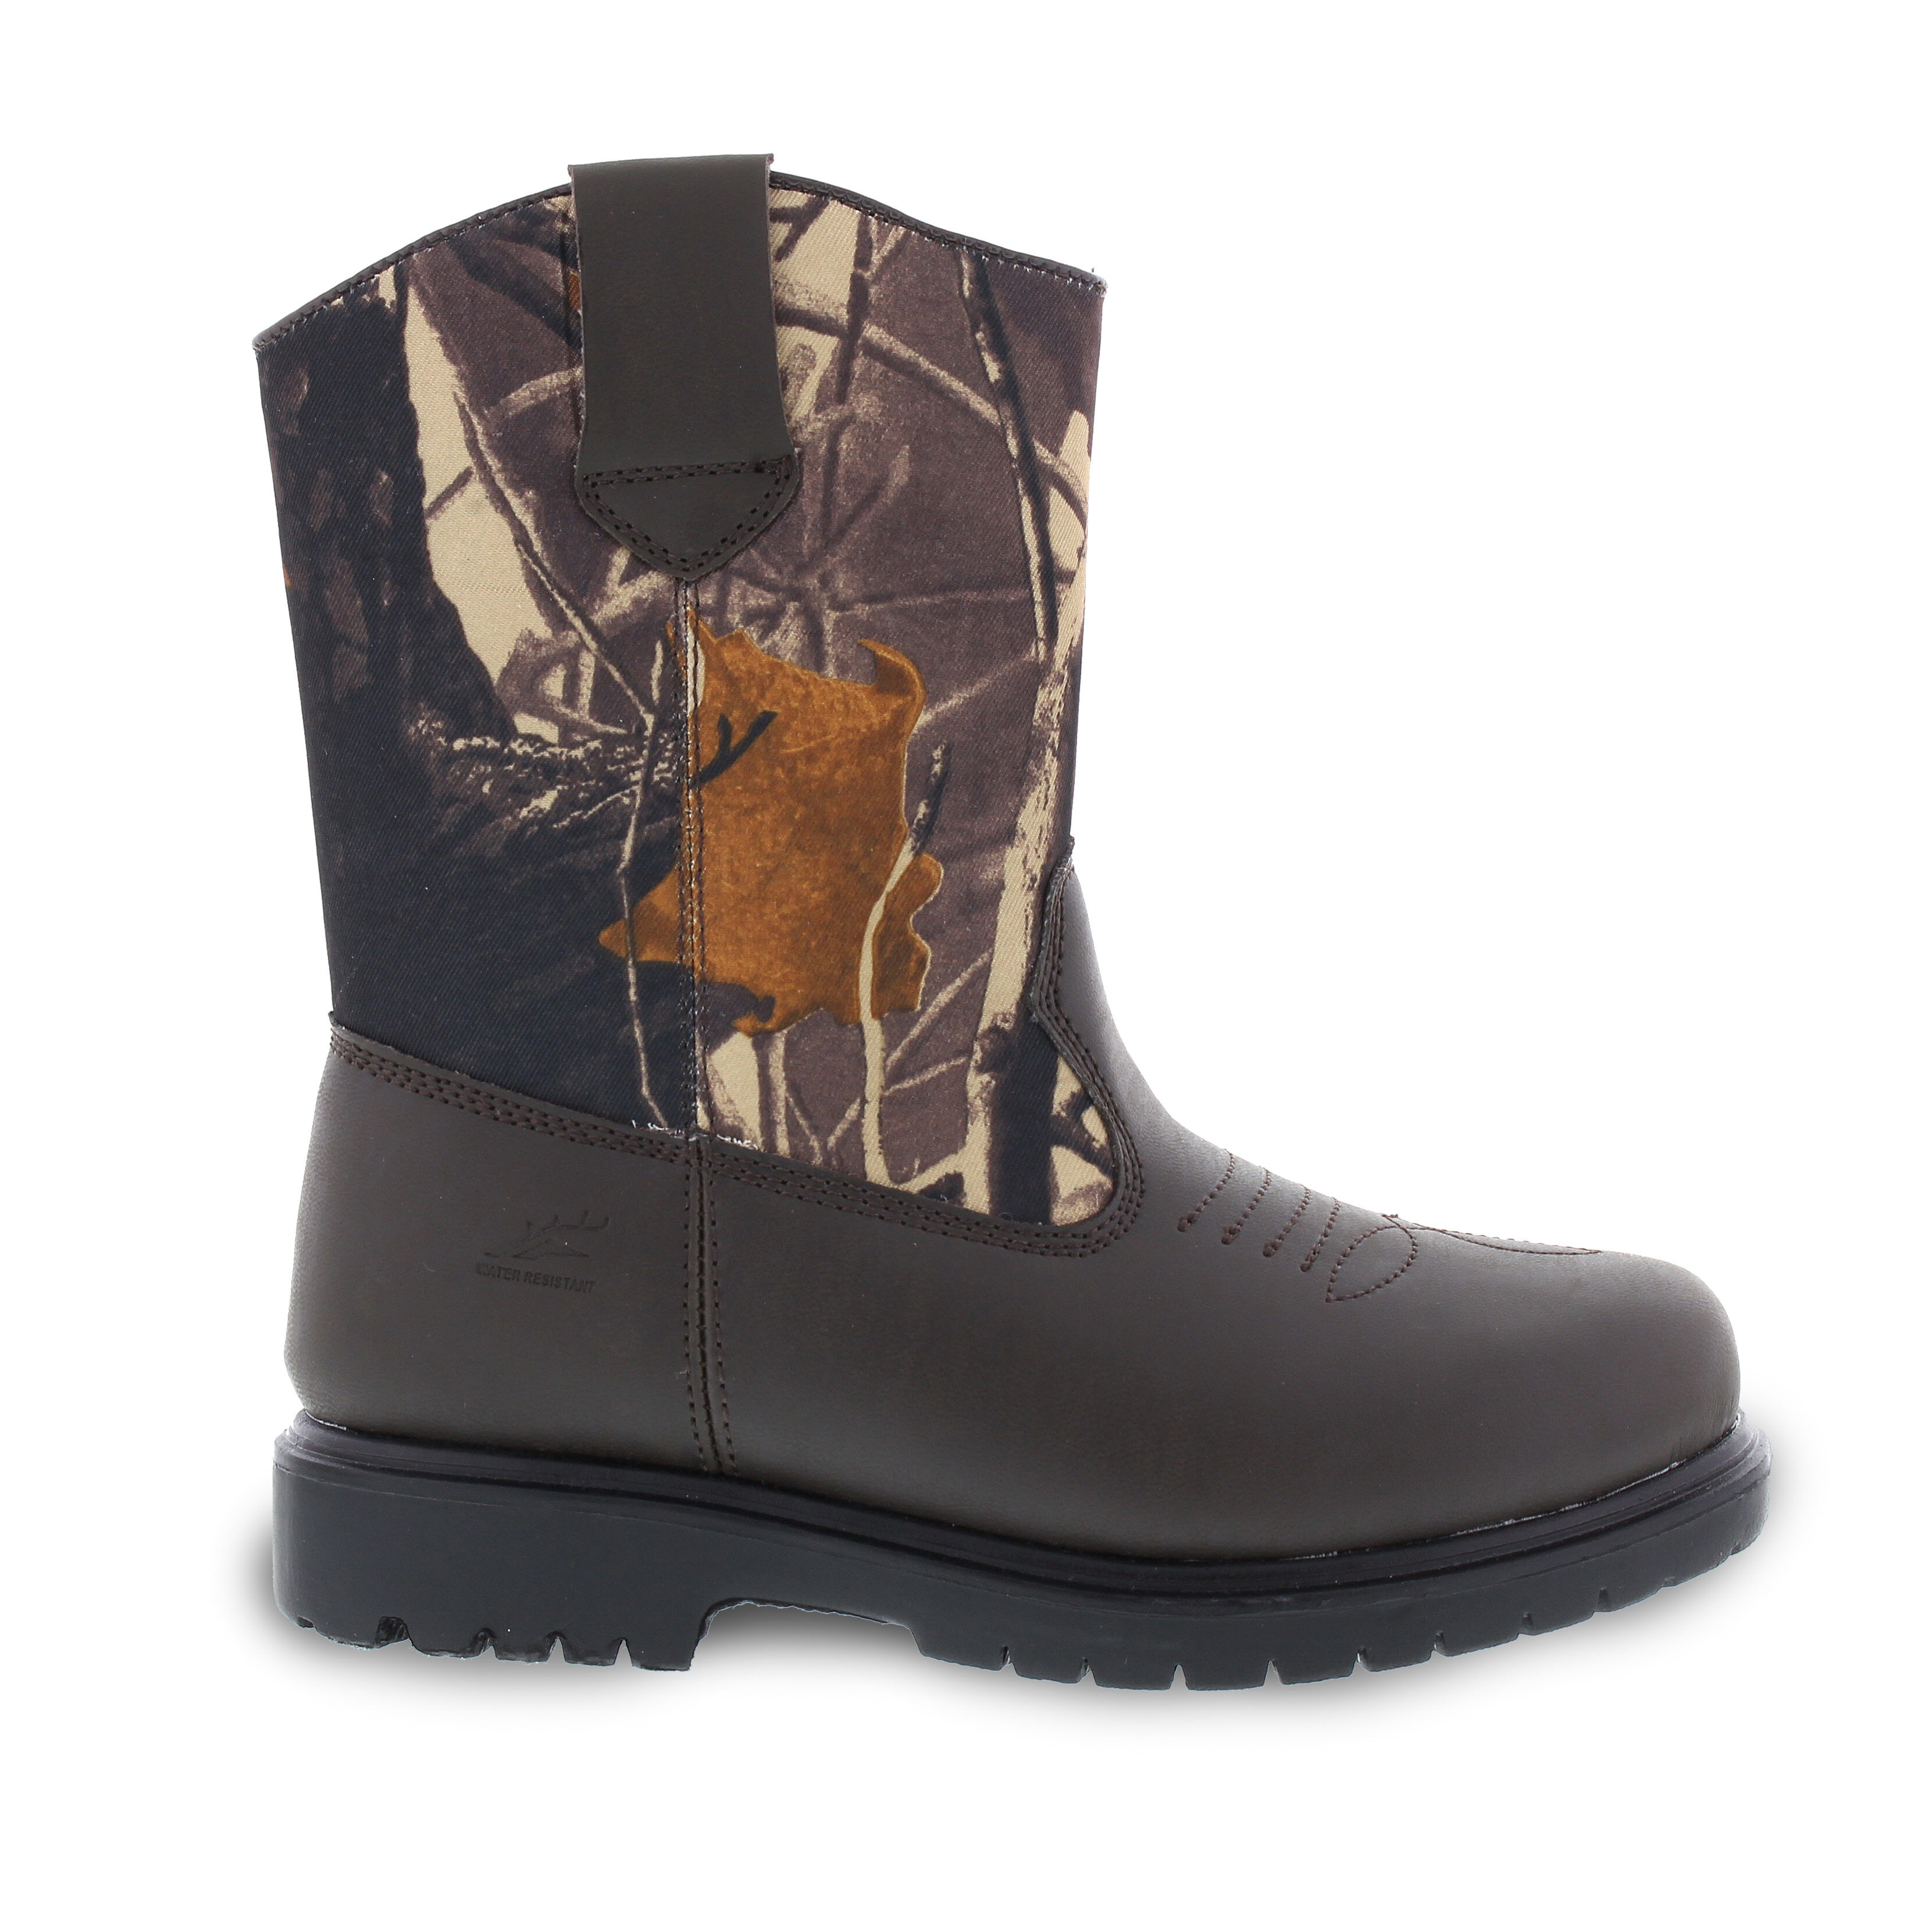 Boys' Deer Stags Little Kid & Big Kid Tour Boots